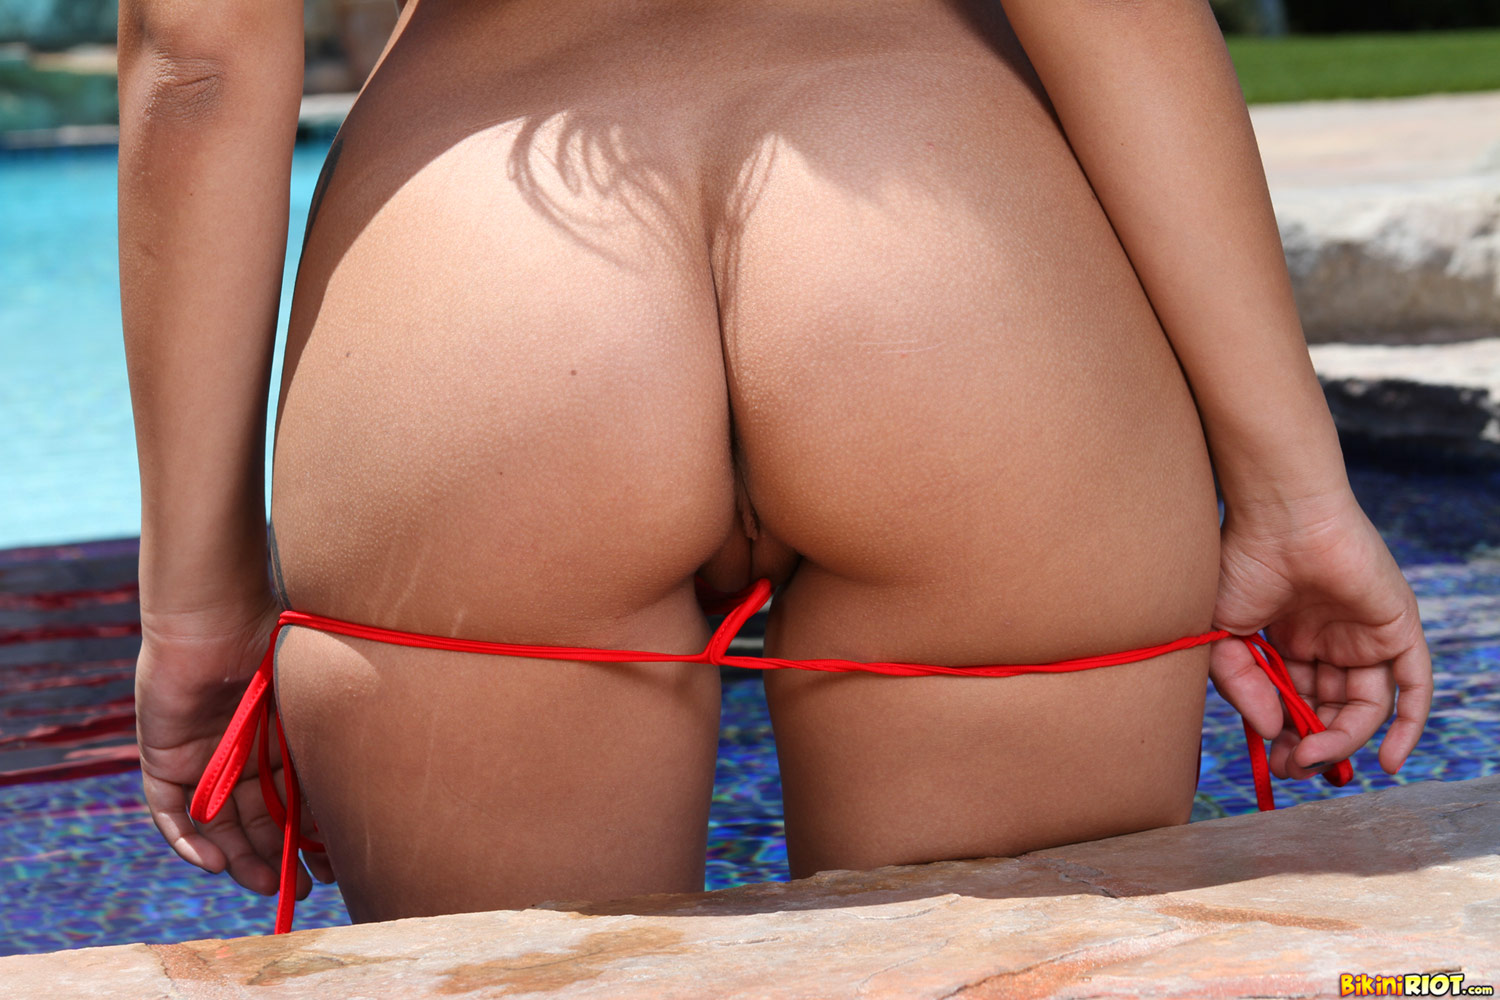 Opinion Micro string bikini ass pussy for